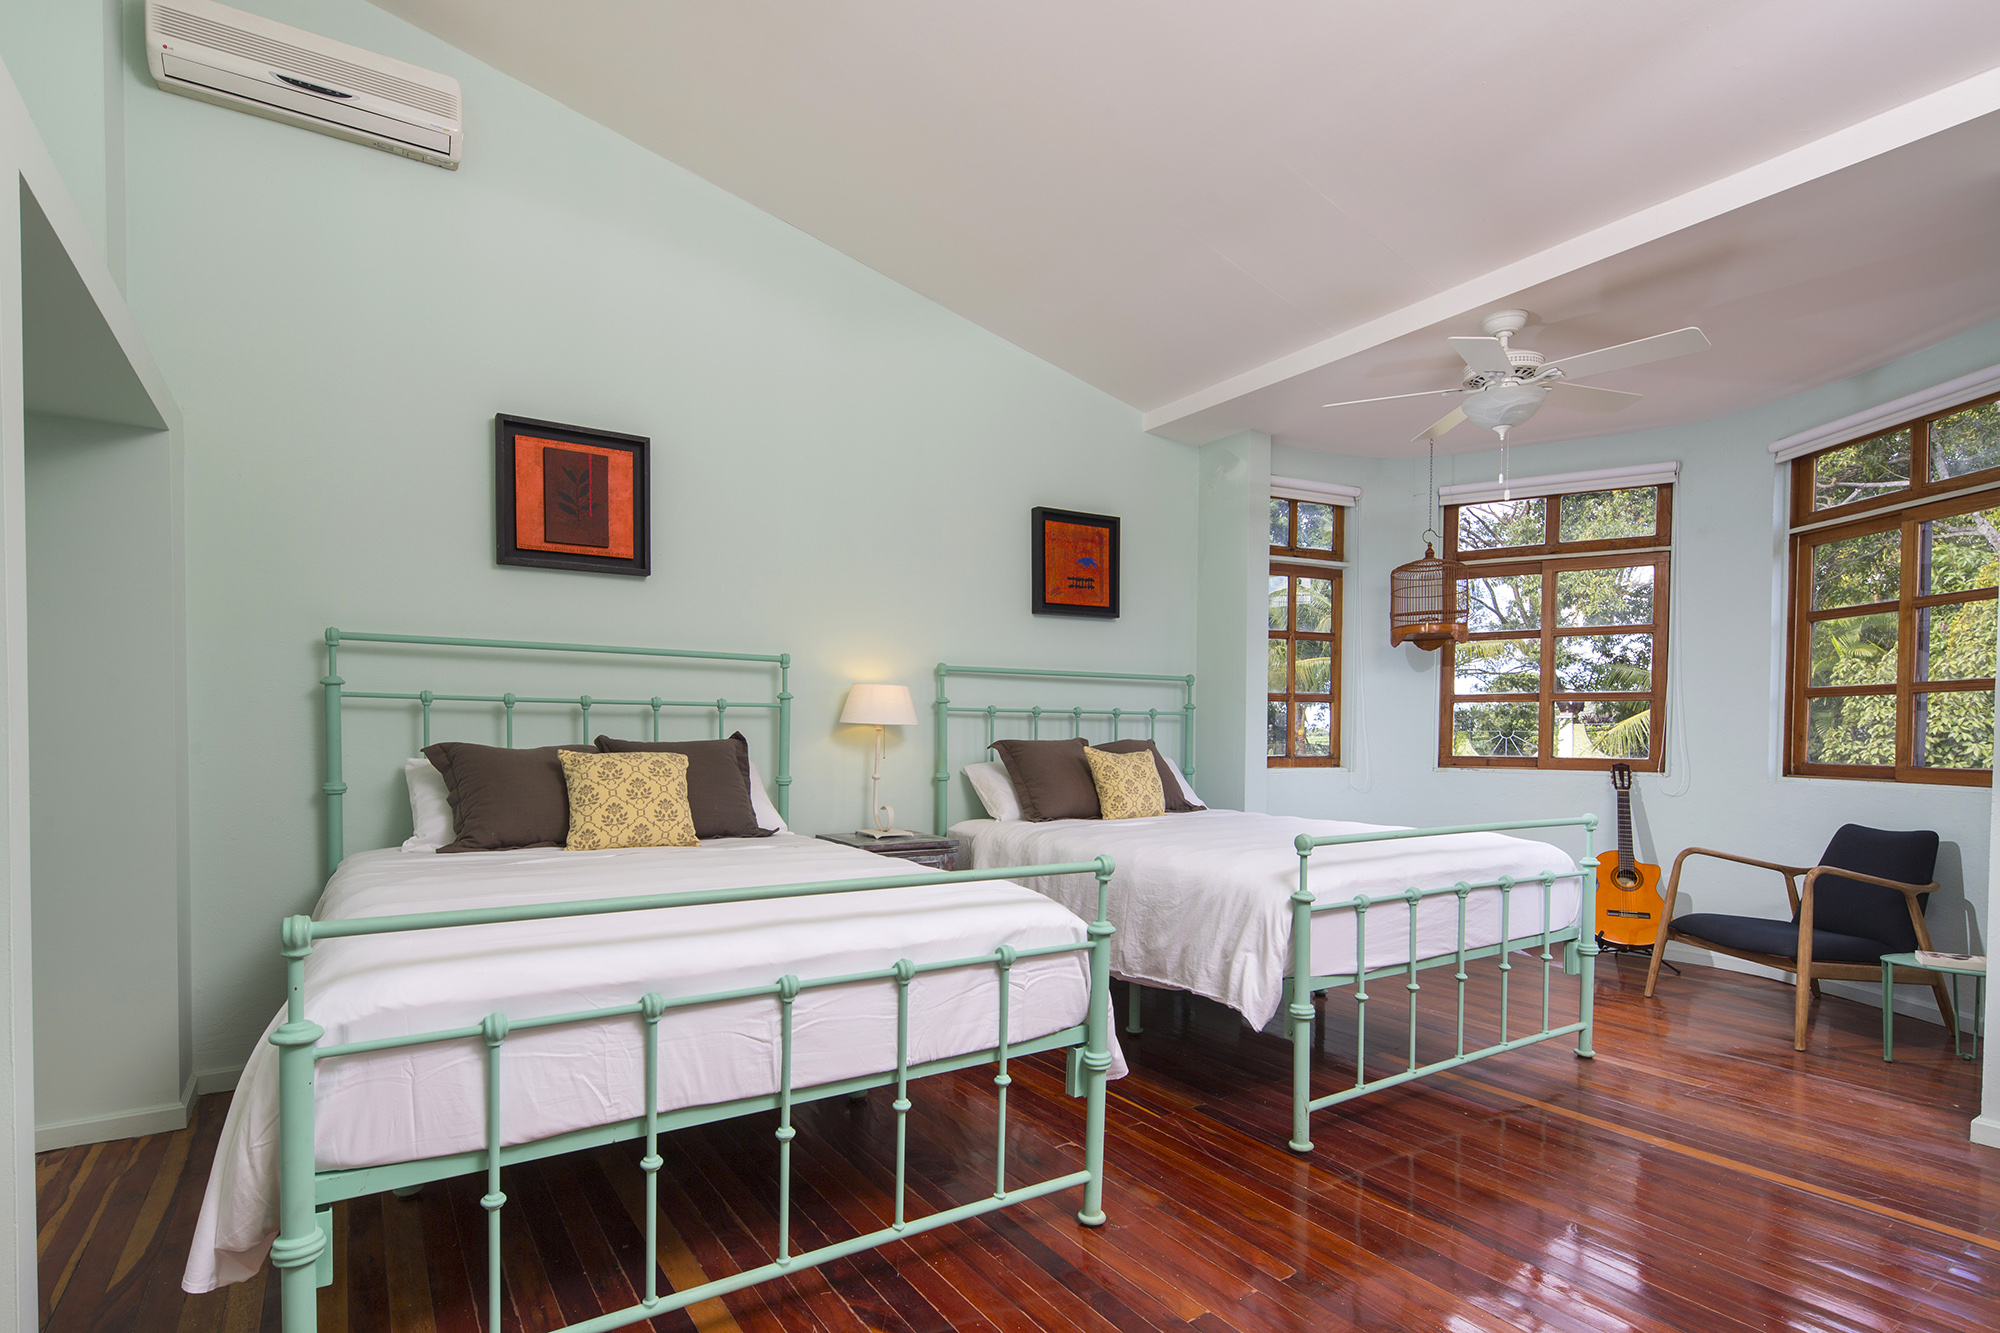 Master suite two bedrooms 3 queen beds 1 villa san for Master bedroom with 2 beds